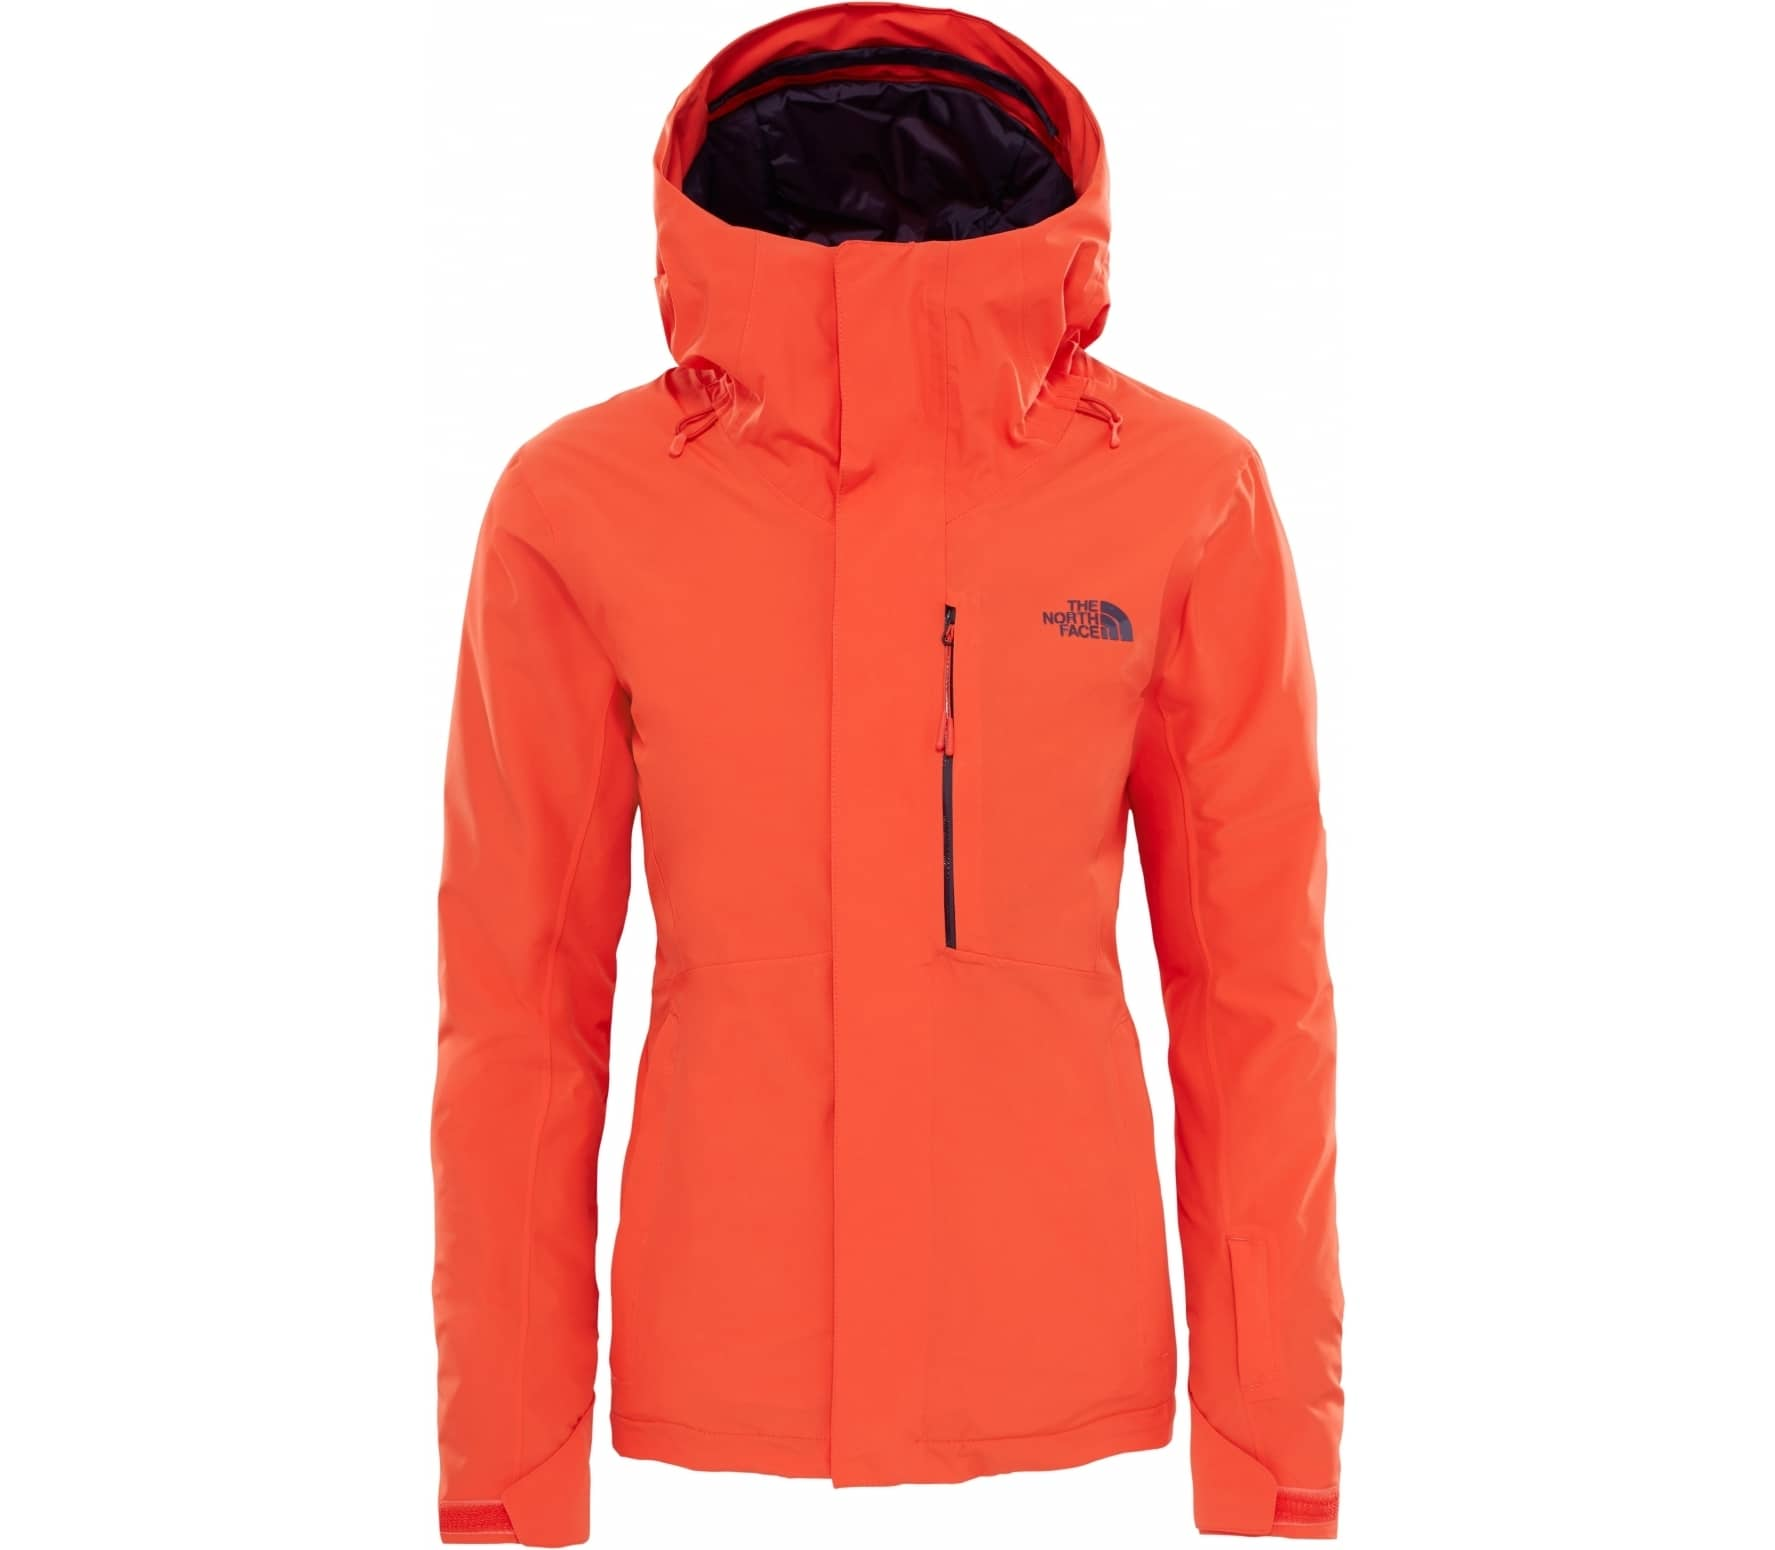 3a17f938999c04 The North Face - Descendit Damen Skijacke (orange) im Online Shop ...